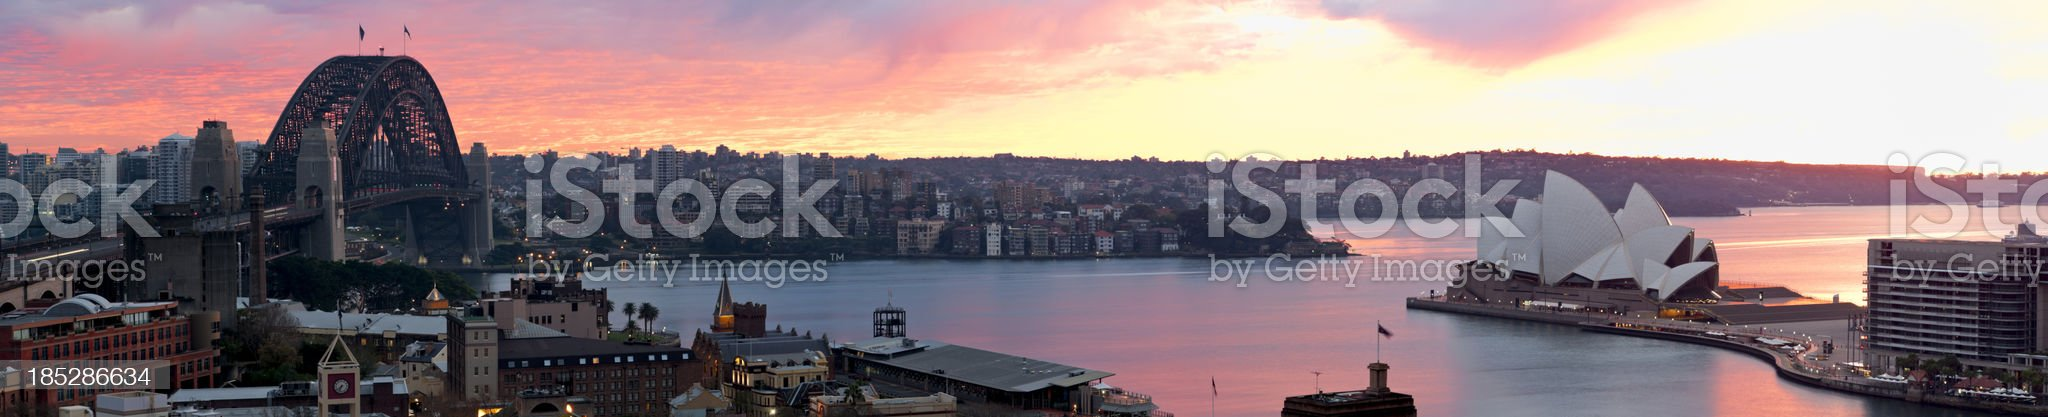 Panoramic View of Sydney Harbor at Sunrise royalty-free stock photo